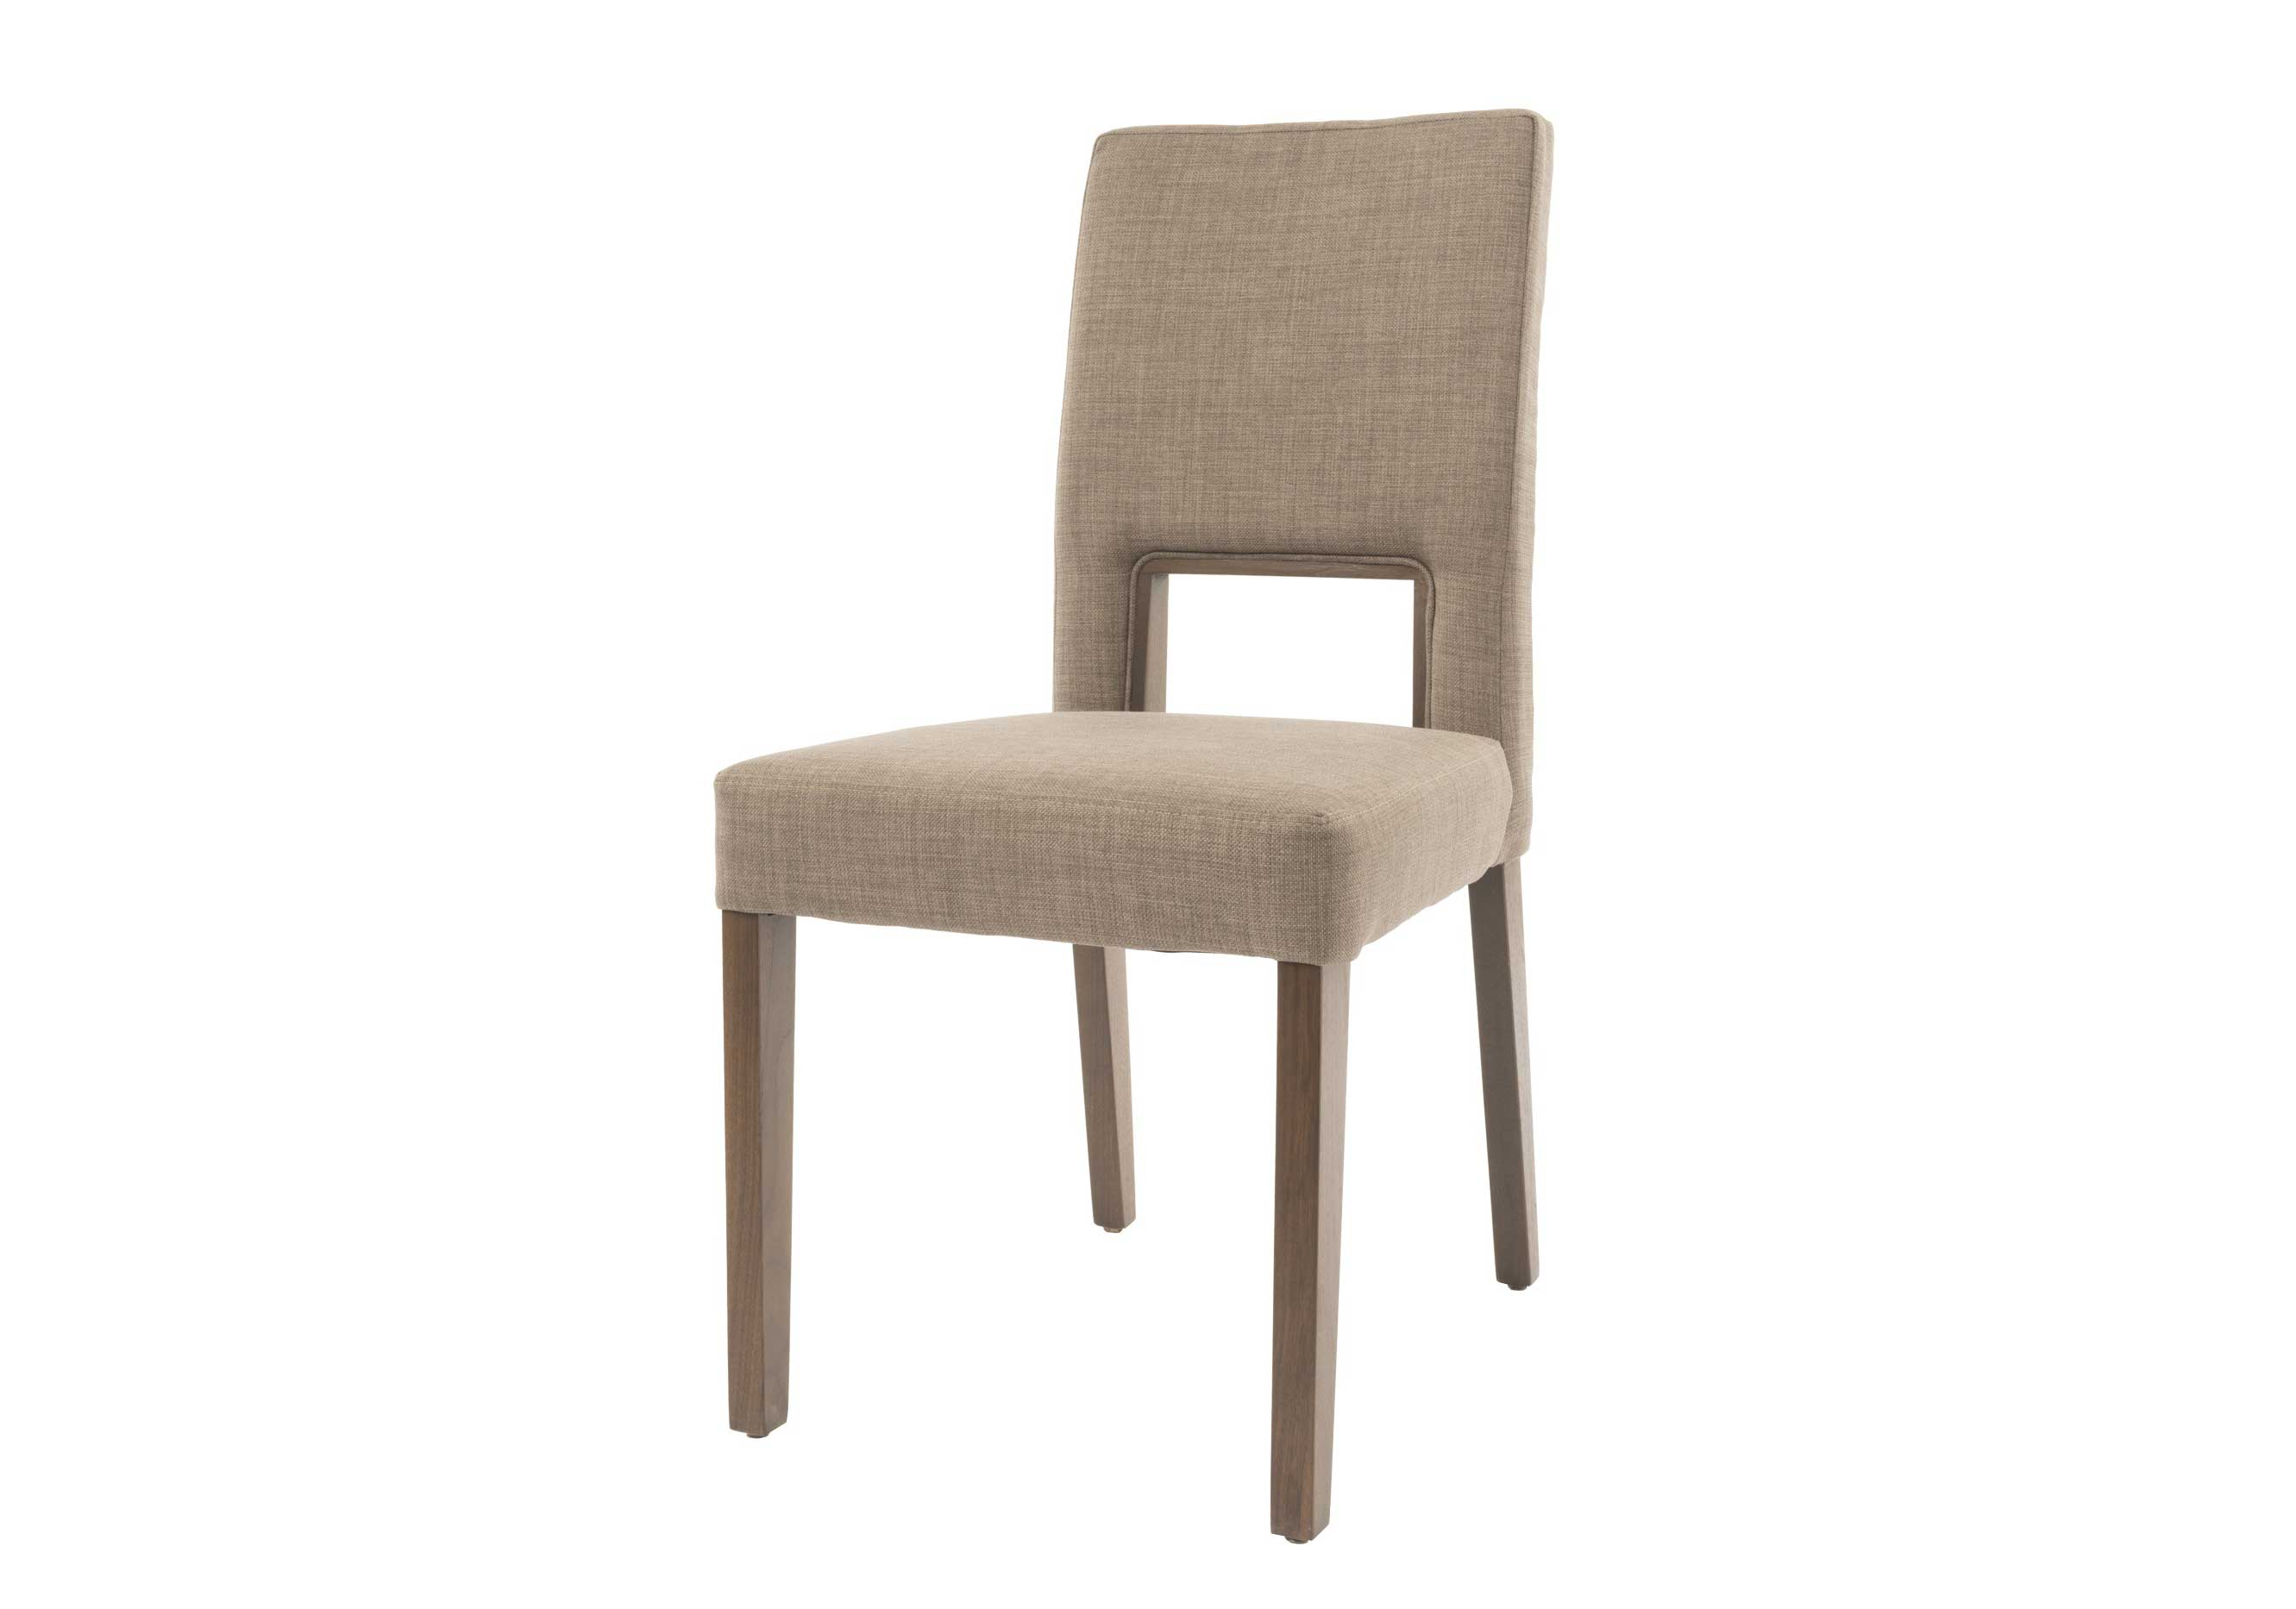 Chairs C-208